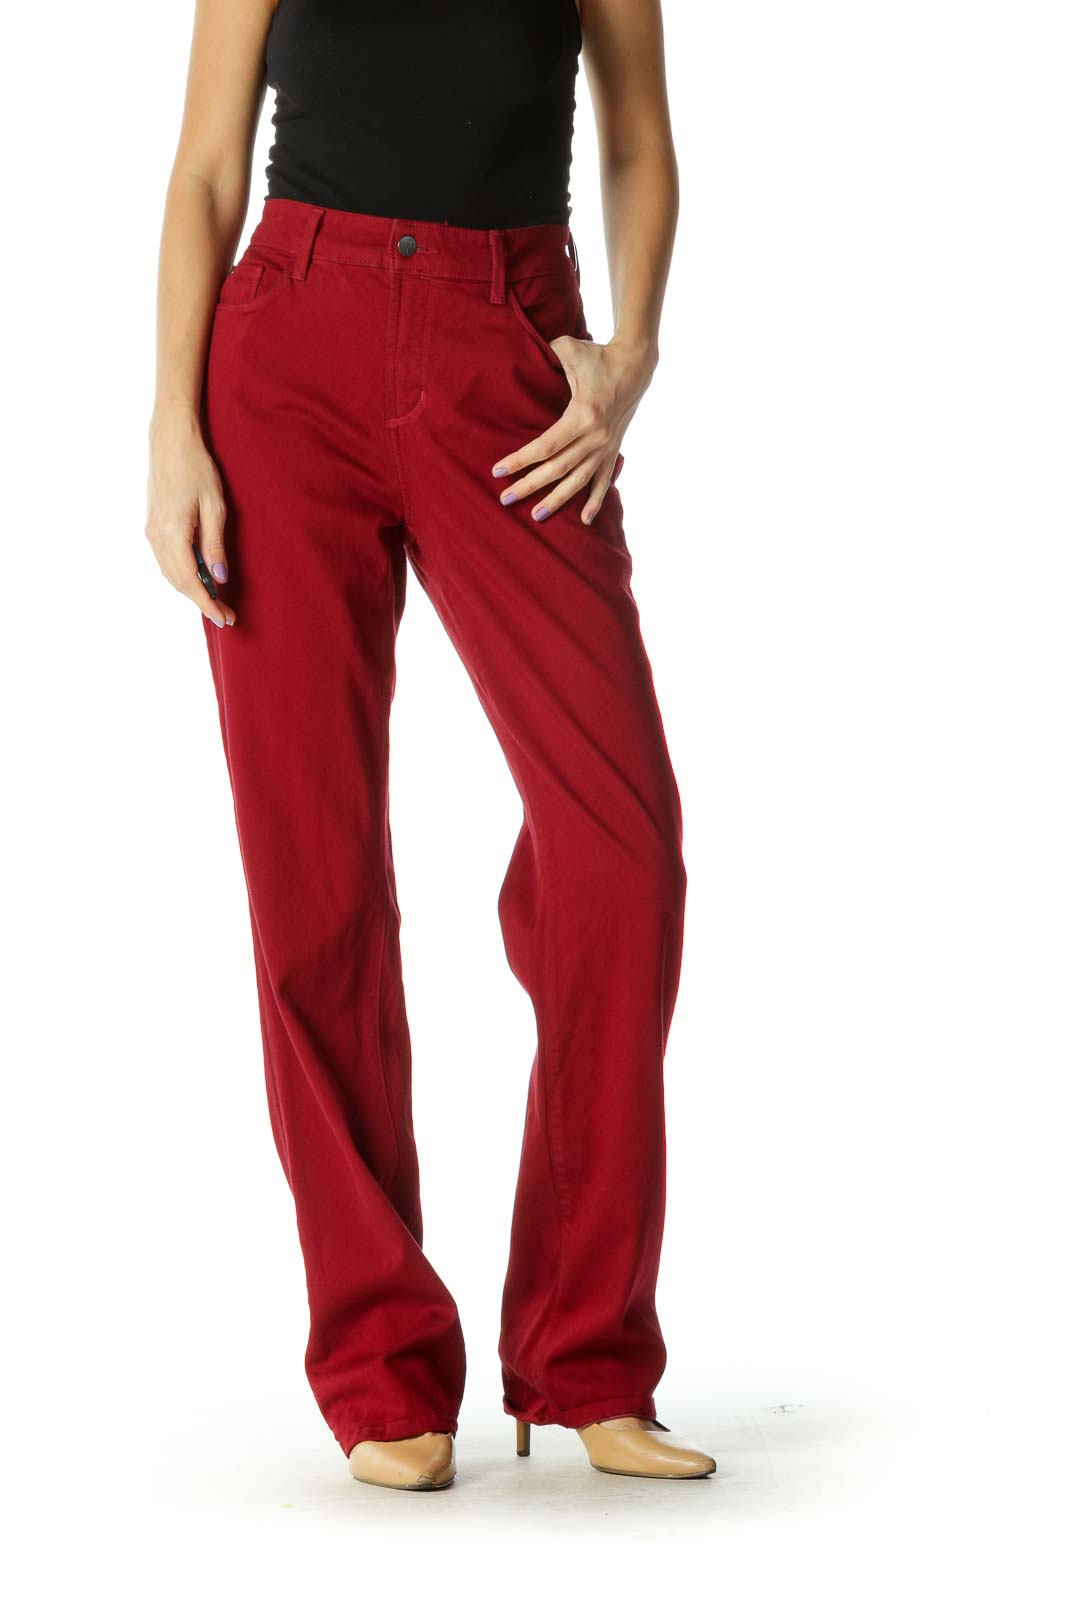 Red Solid Casual Trouser Front